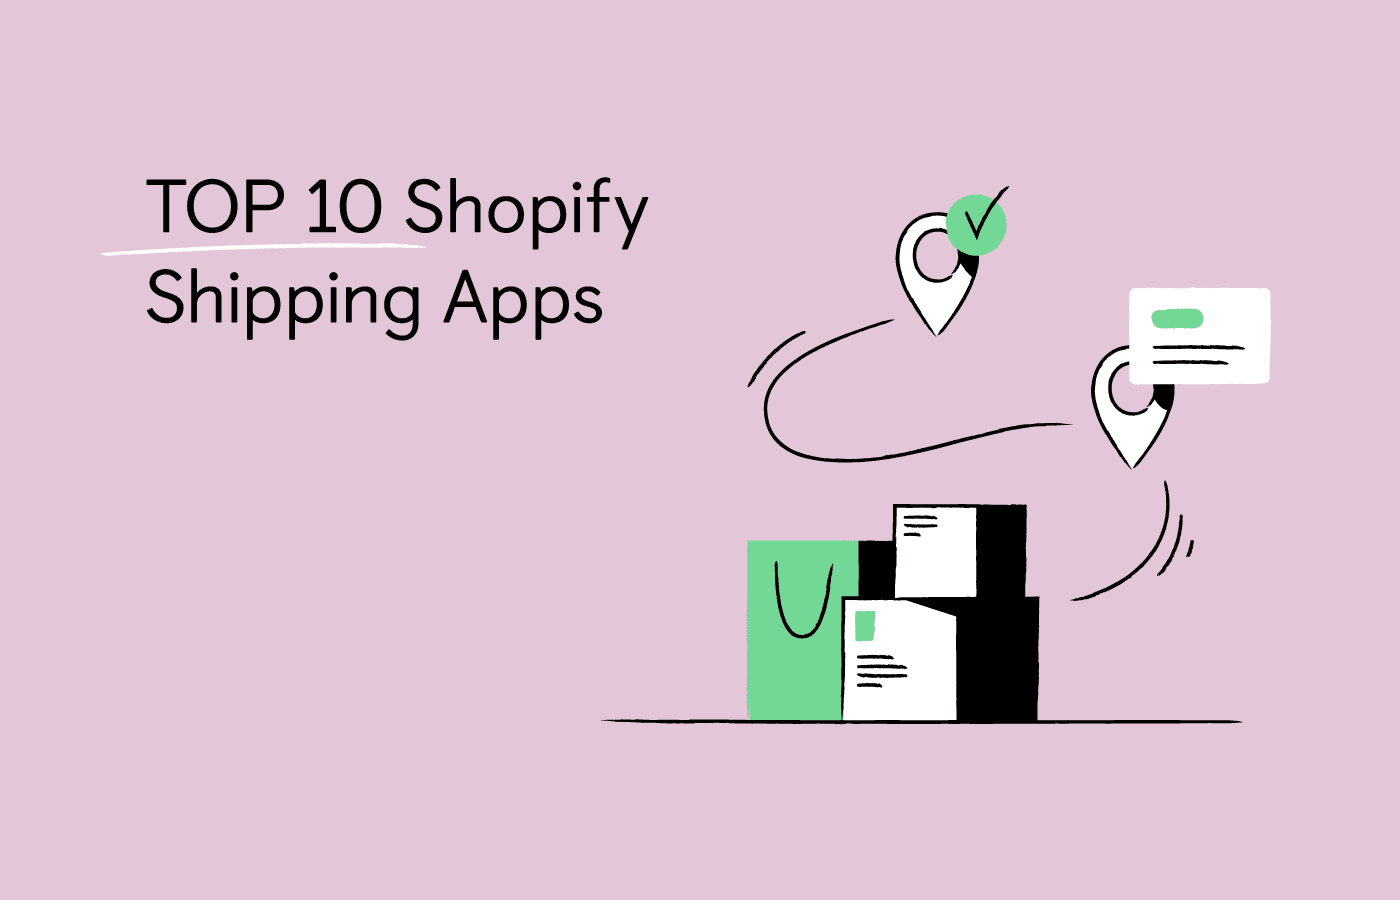 Top 10 Shopify Shipping and Order Tracking Apps in 2021